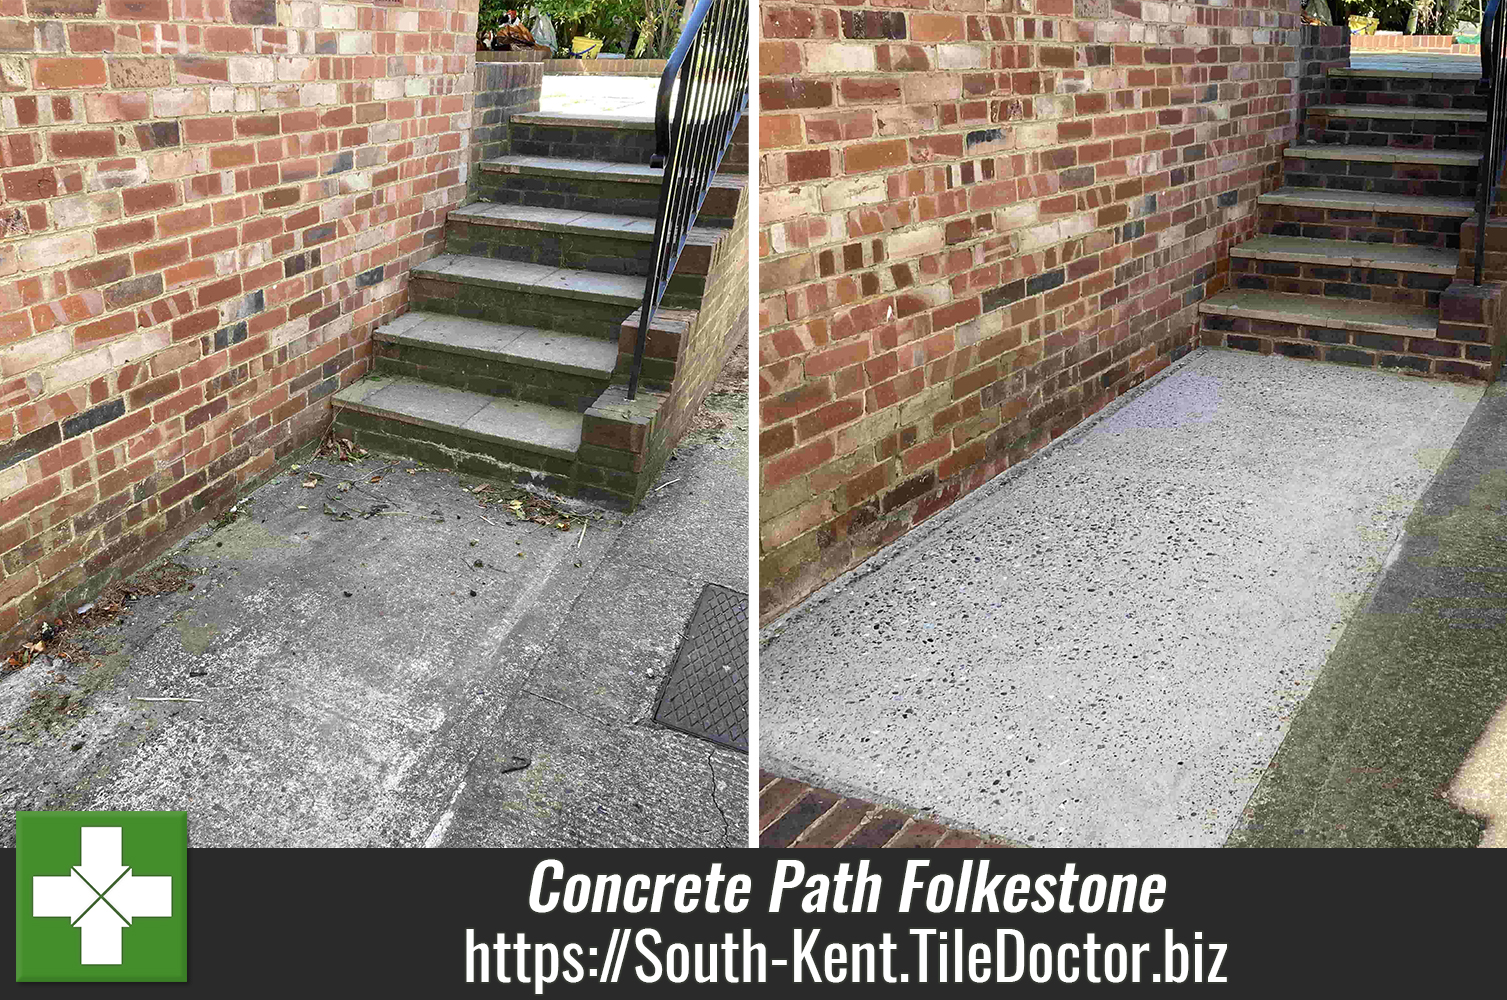 Concrete-and-Brick-Path-Before-After-Cleaning-Folkestone